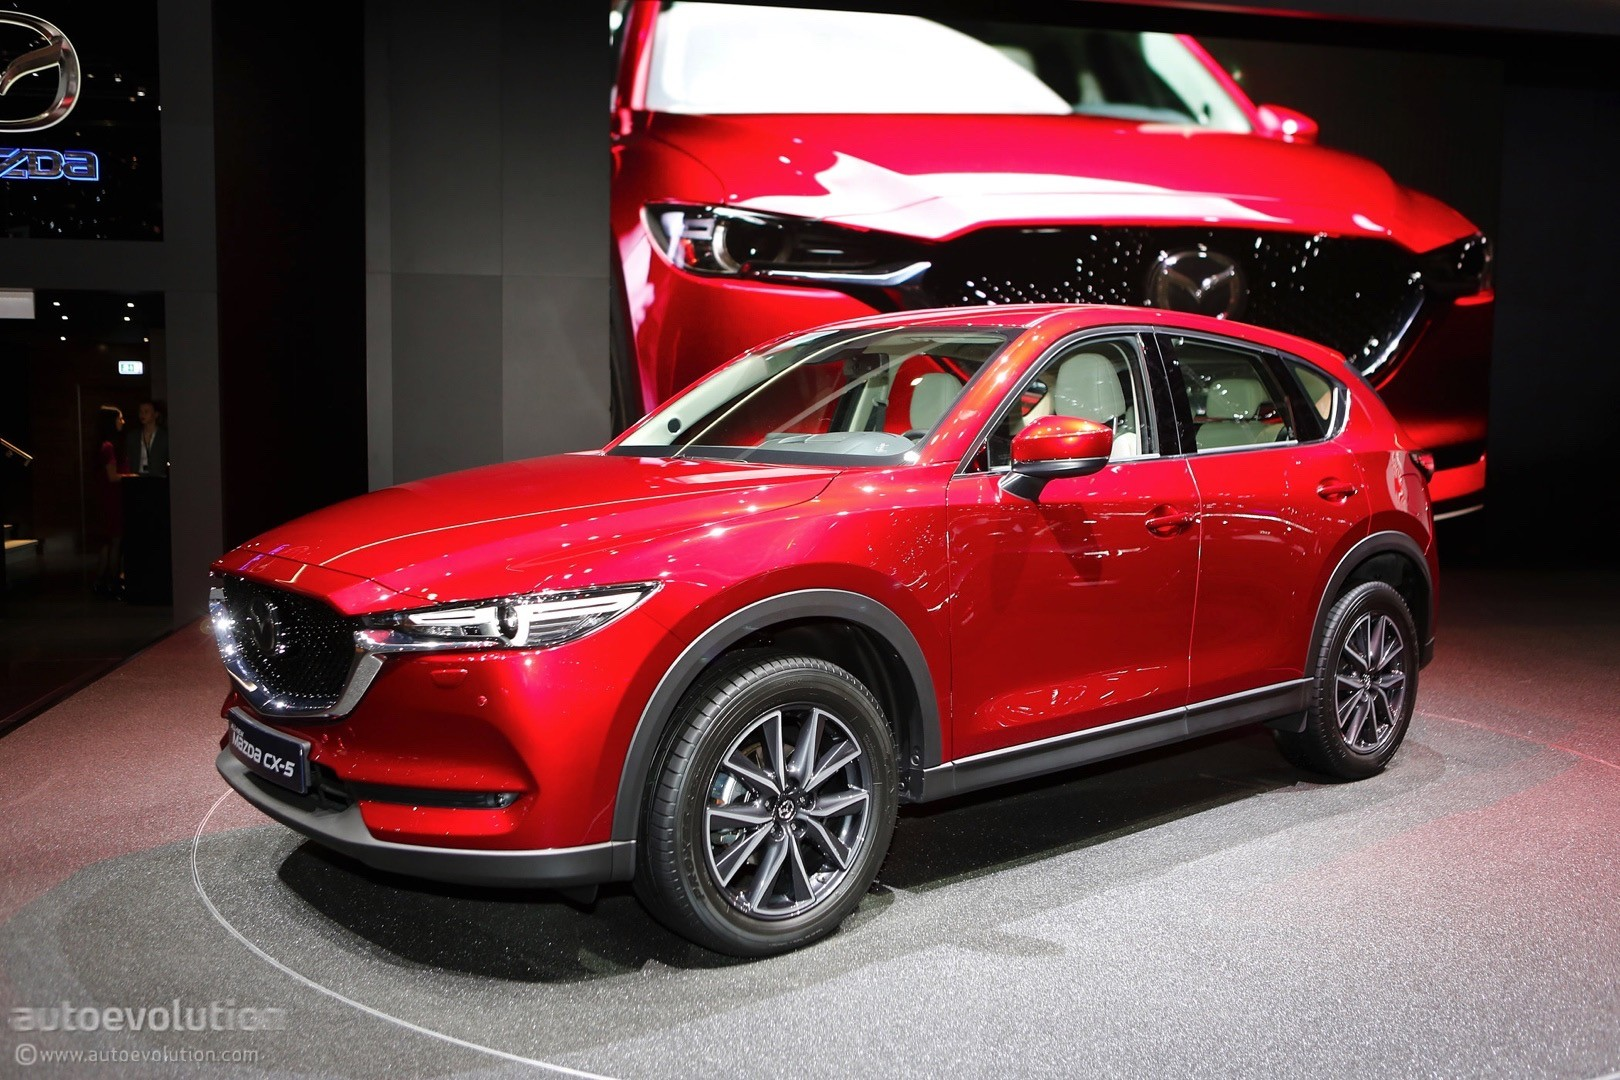 Tesla Update >> 2017 Mazda CX-5 Brags With Soul Red Crystal Paintwork In Geneva - autoevolution